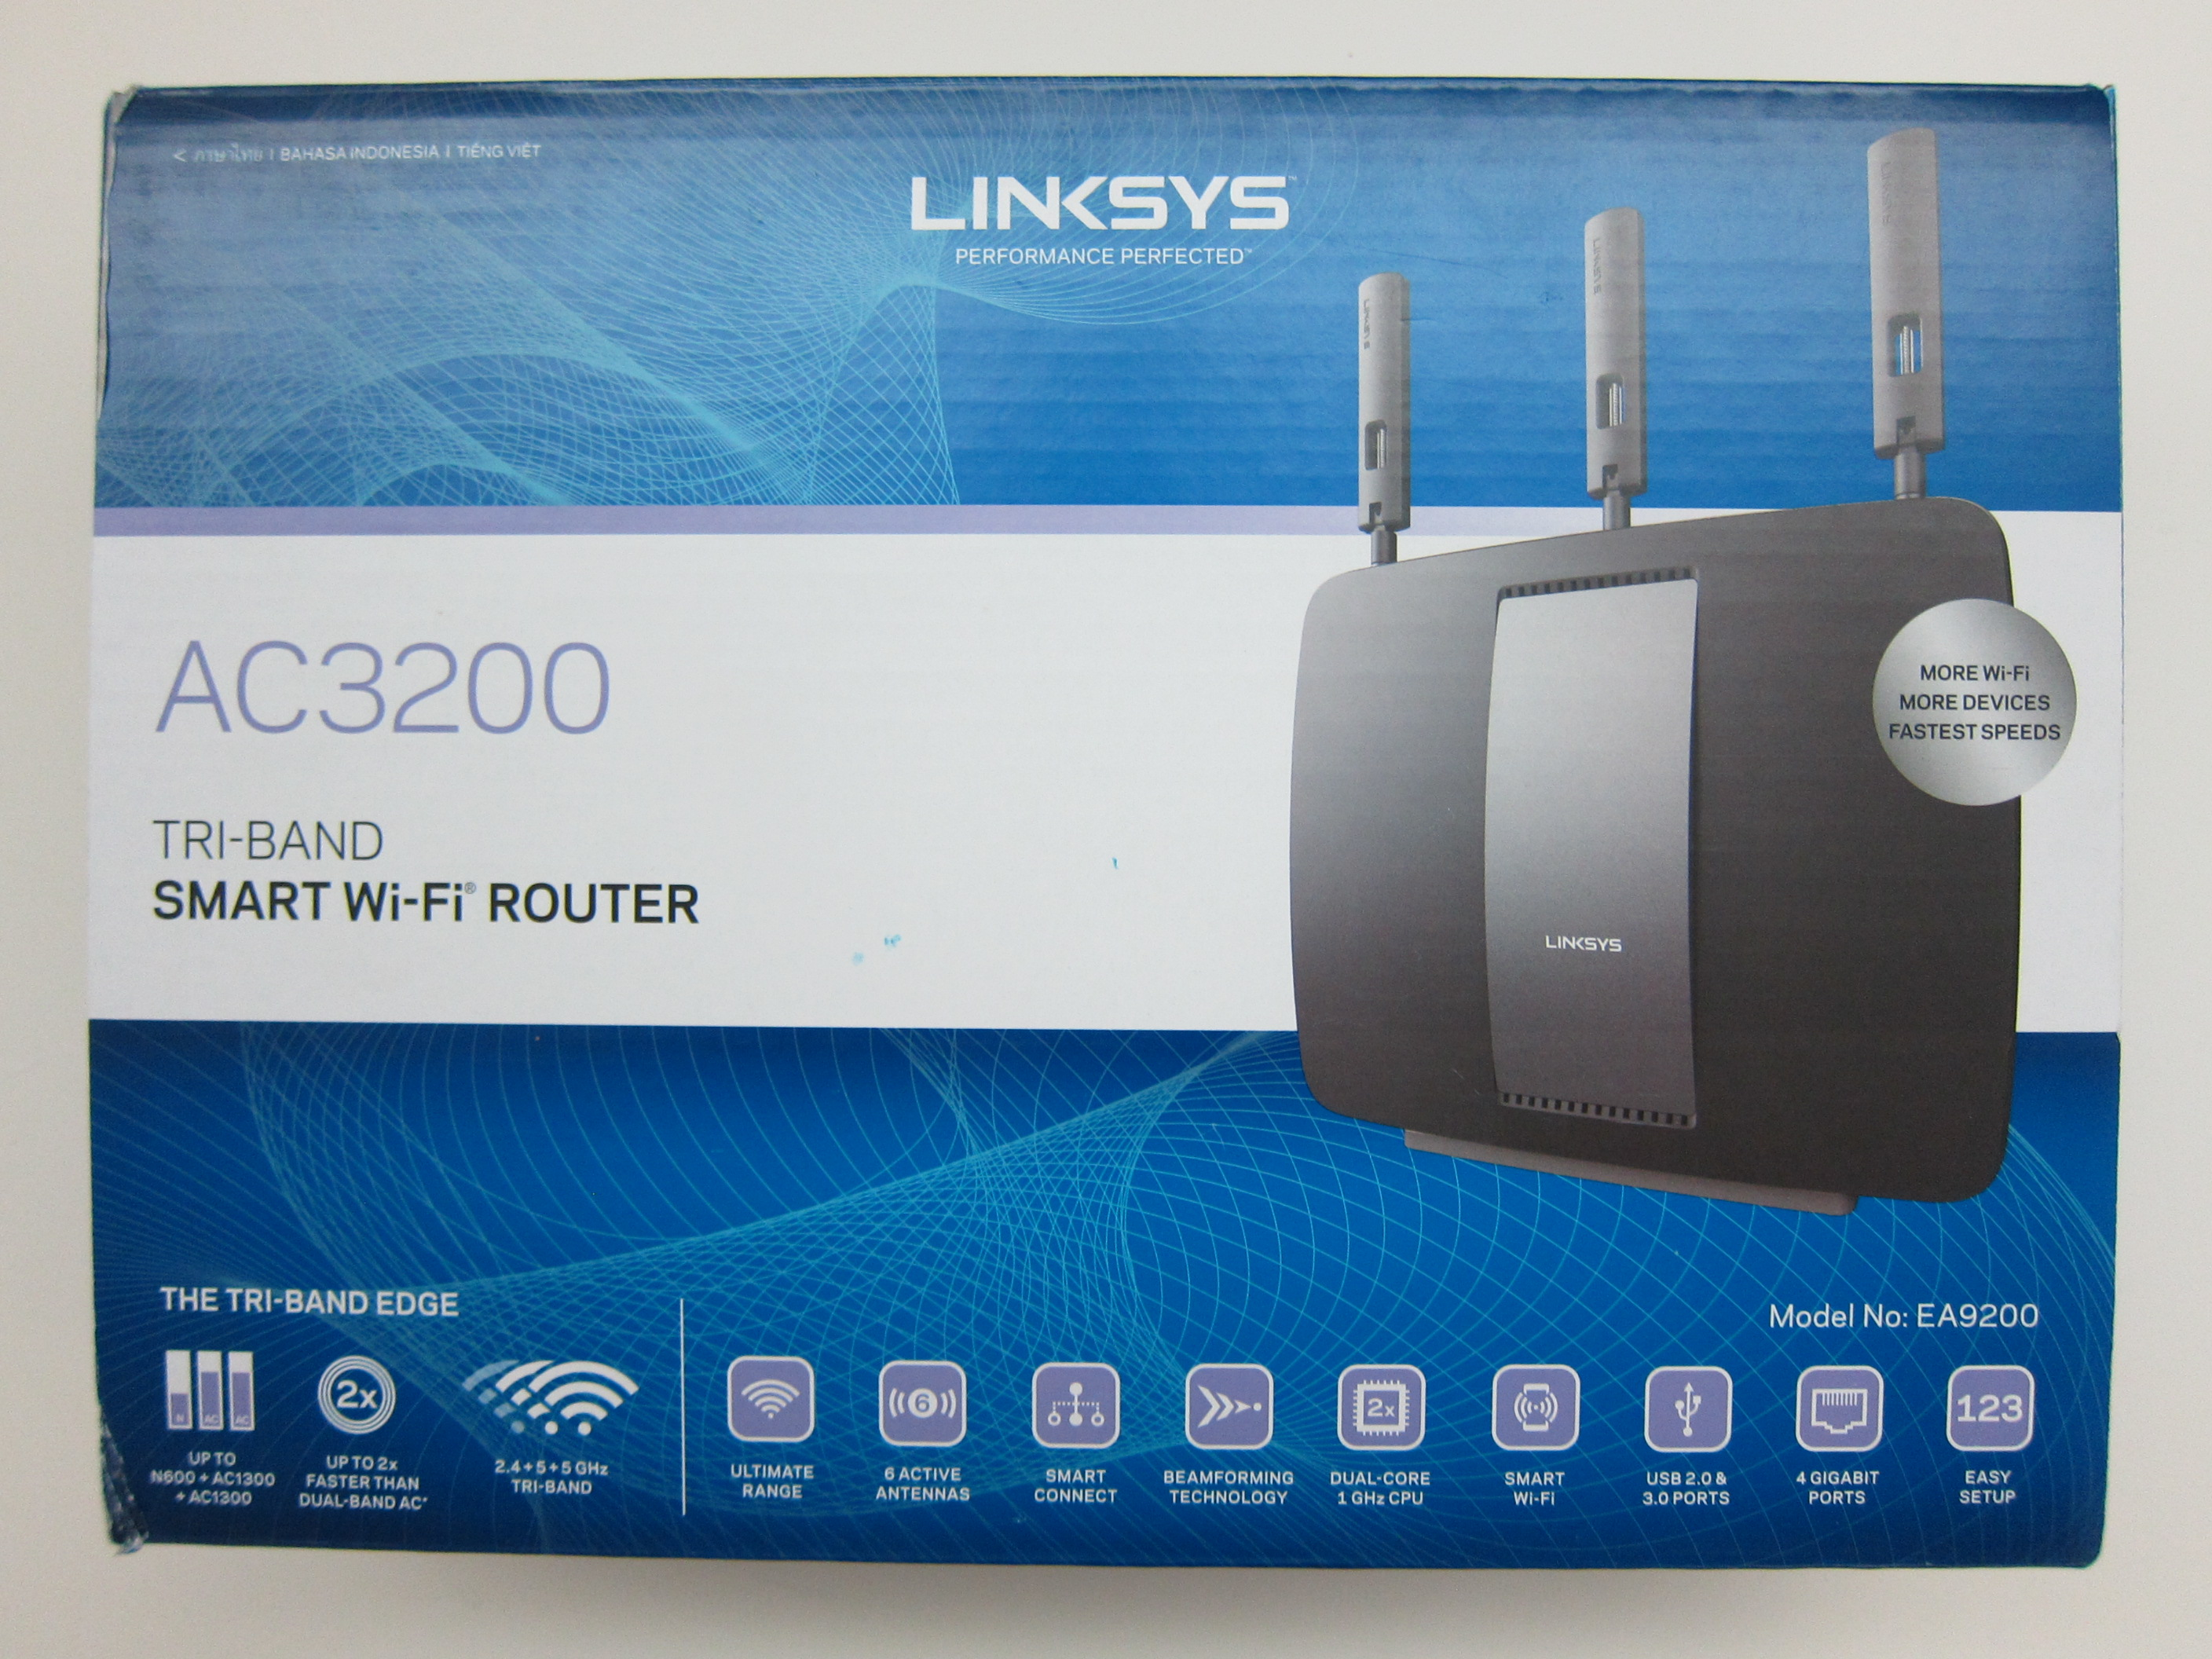 Linksys ea9200 wireless ac3200 tri band smart wi fi router review linksys ea9200 box front greentooth Gallery